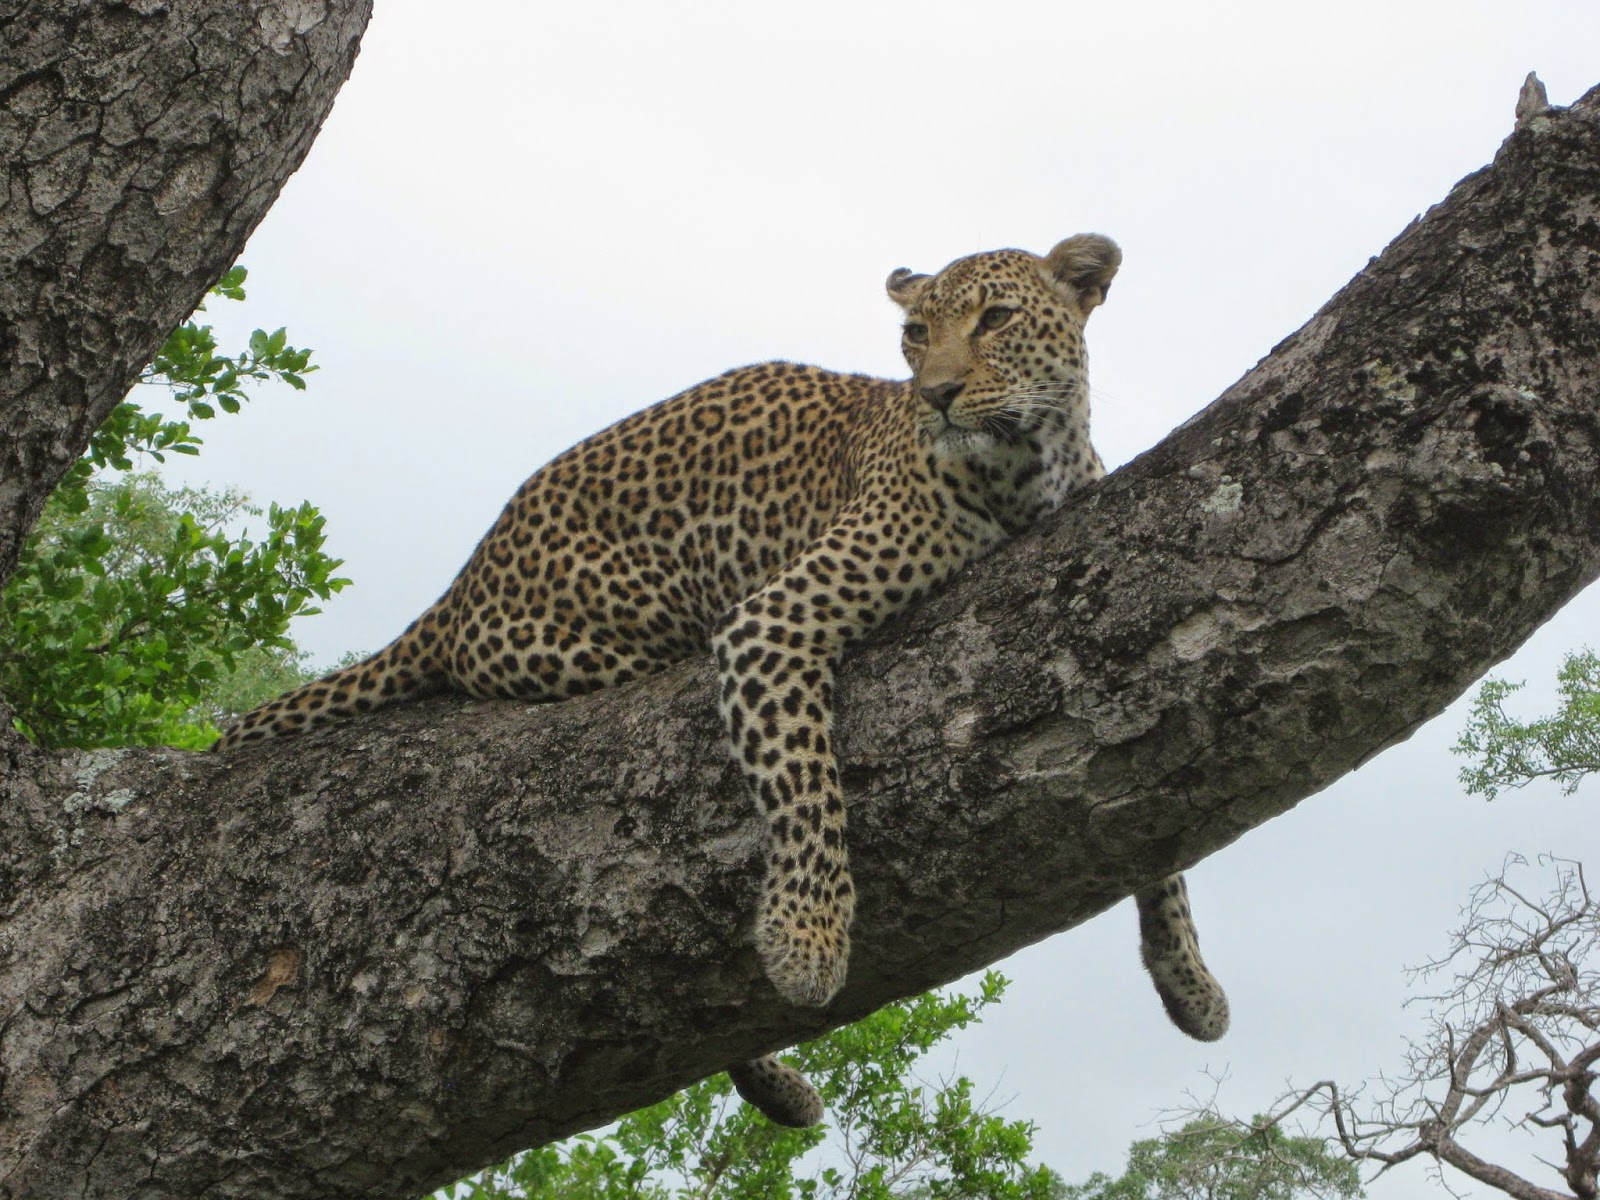 Sabi Sands - Game drive day 2: Leopard spotted in a tree